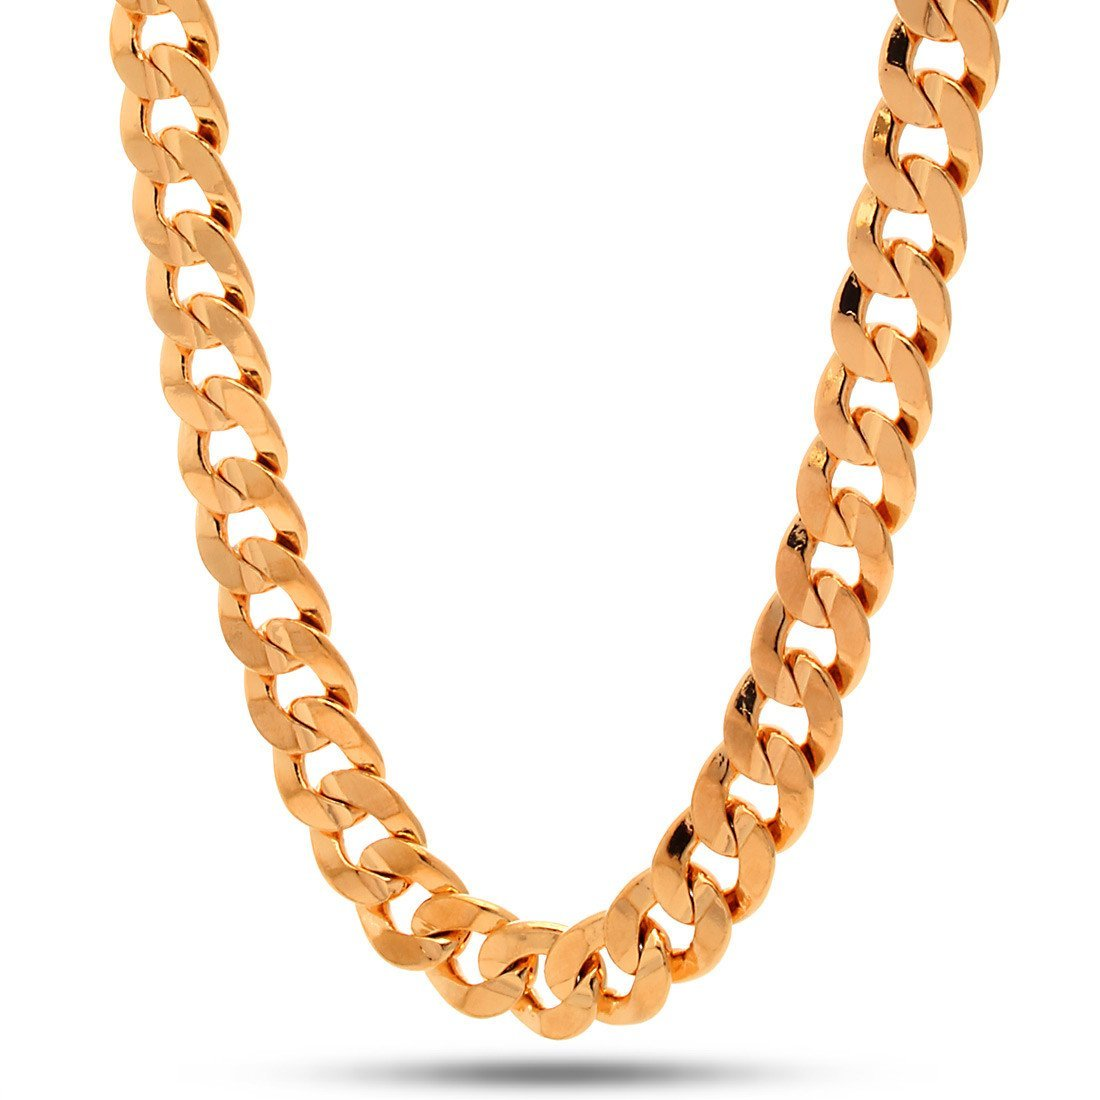 Chains - 12mm 18K Gold Cuban Curb Chain -   jetcube